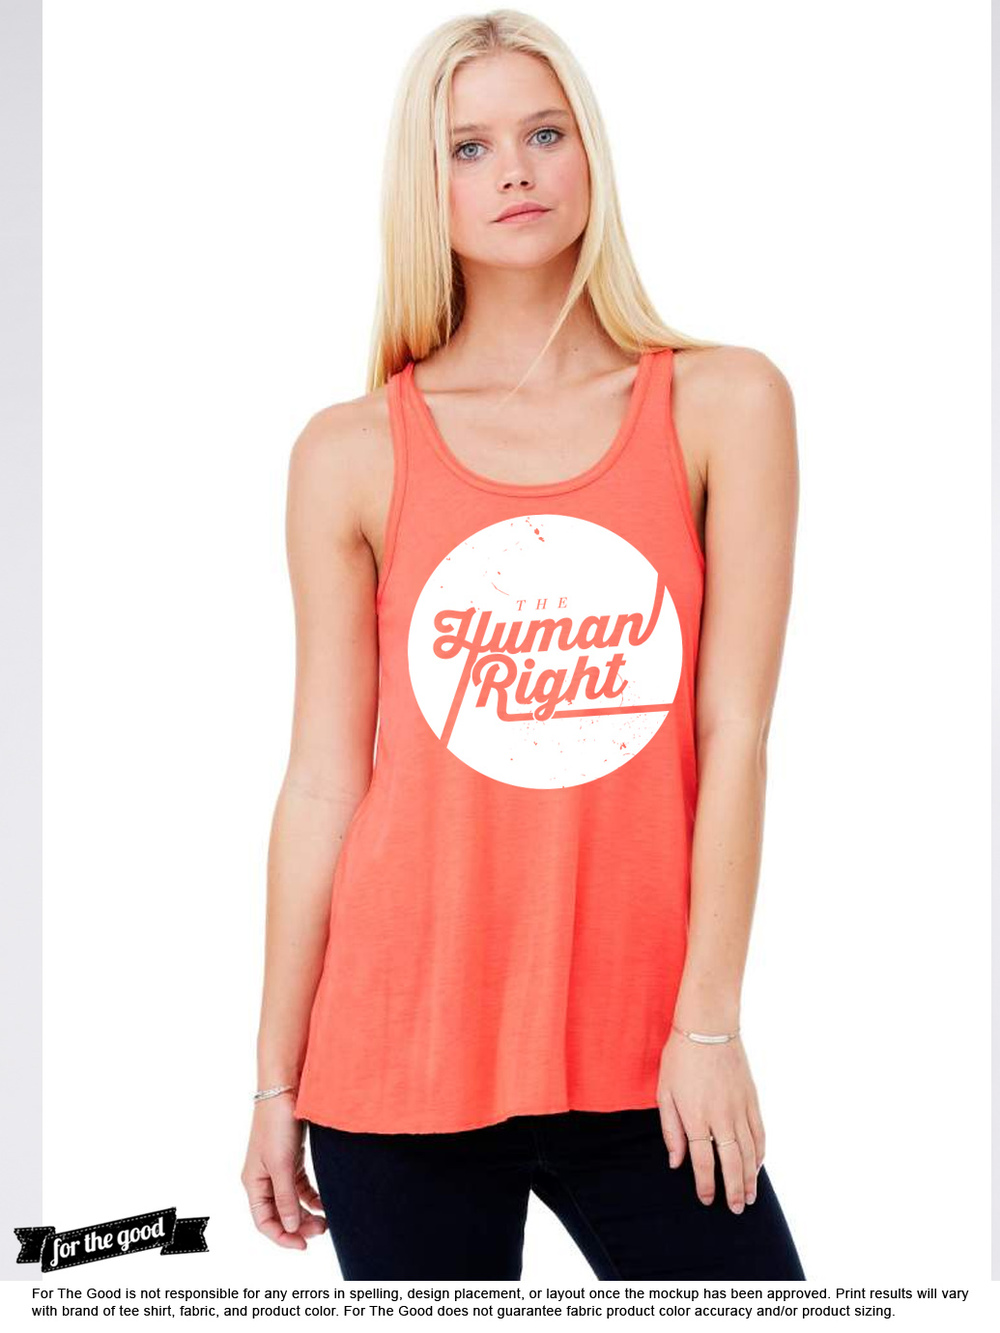 apparel concept | The Human Right | North Texas District